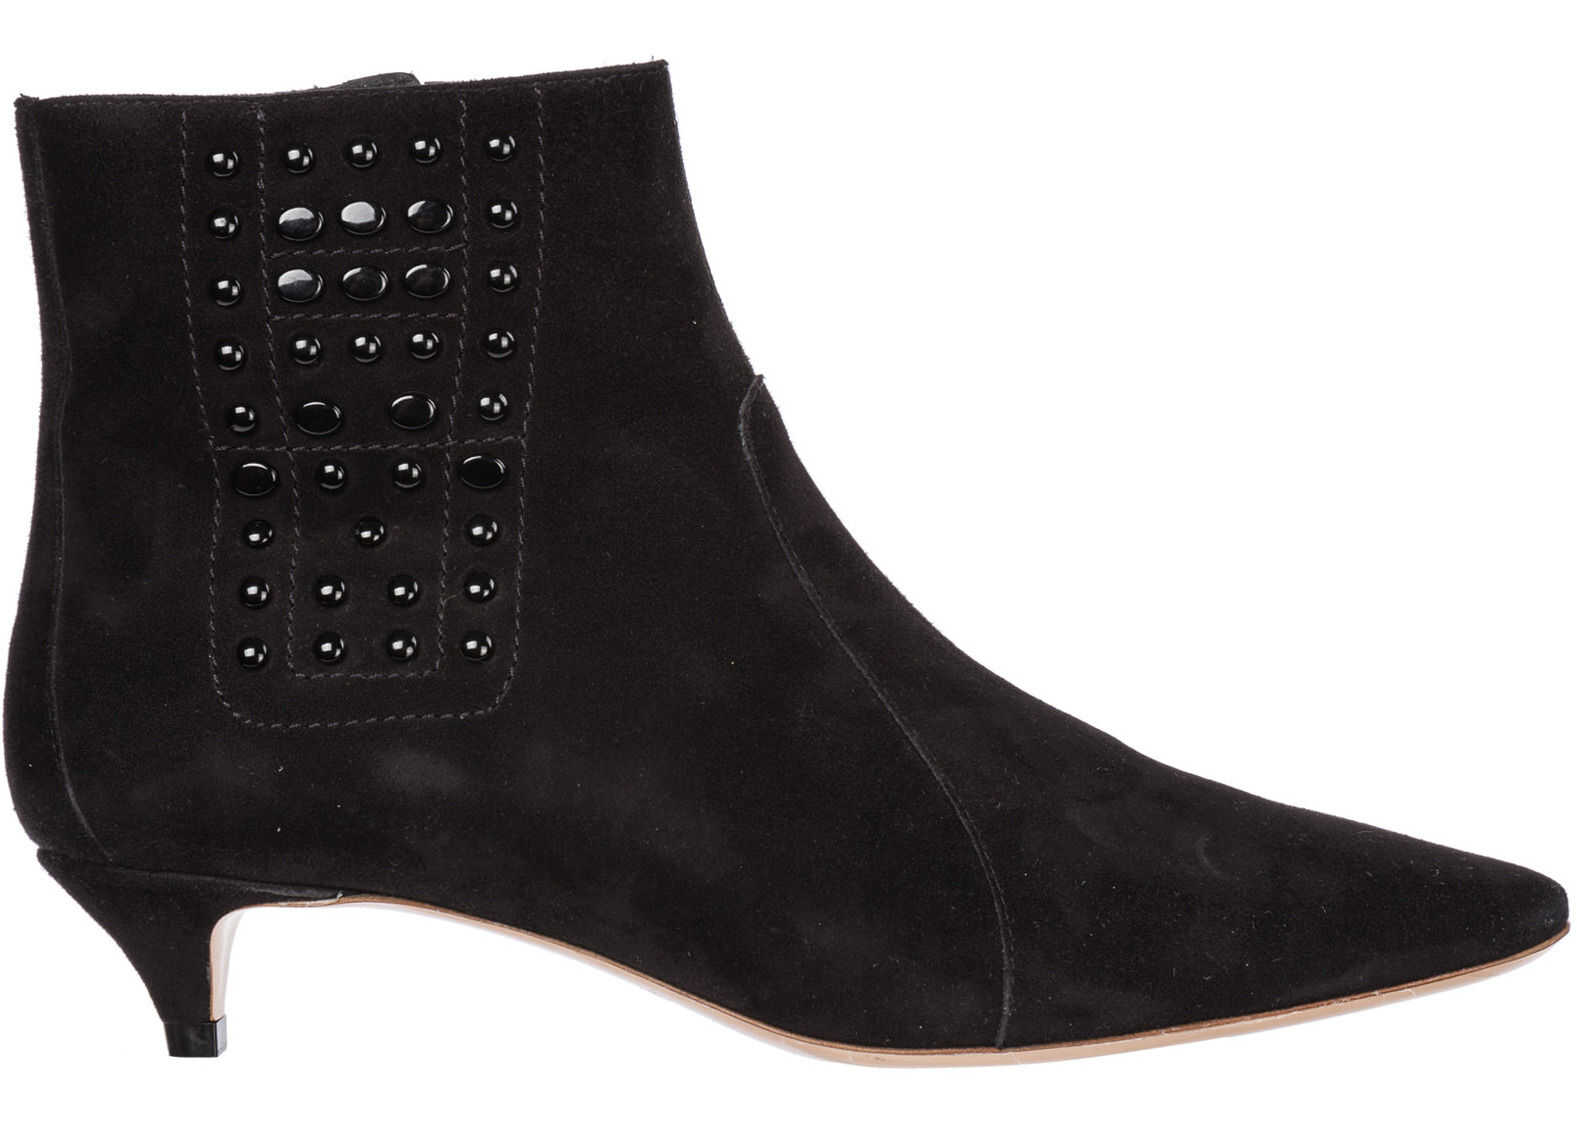 TOD'S Boots Booties Black